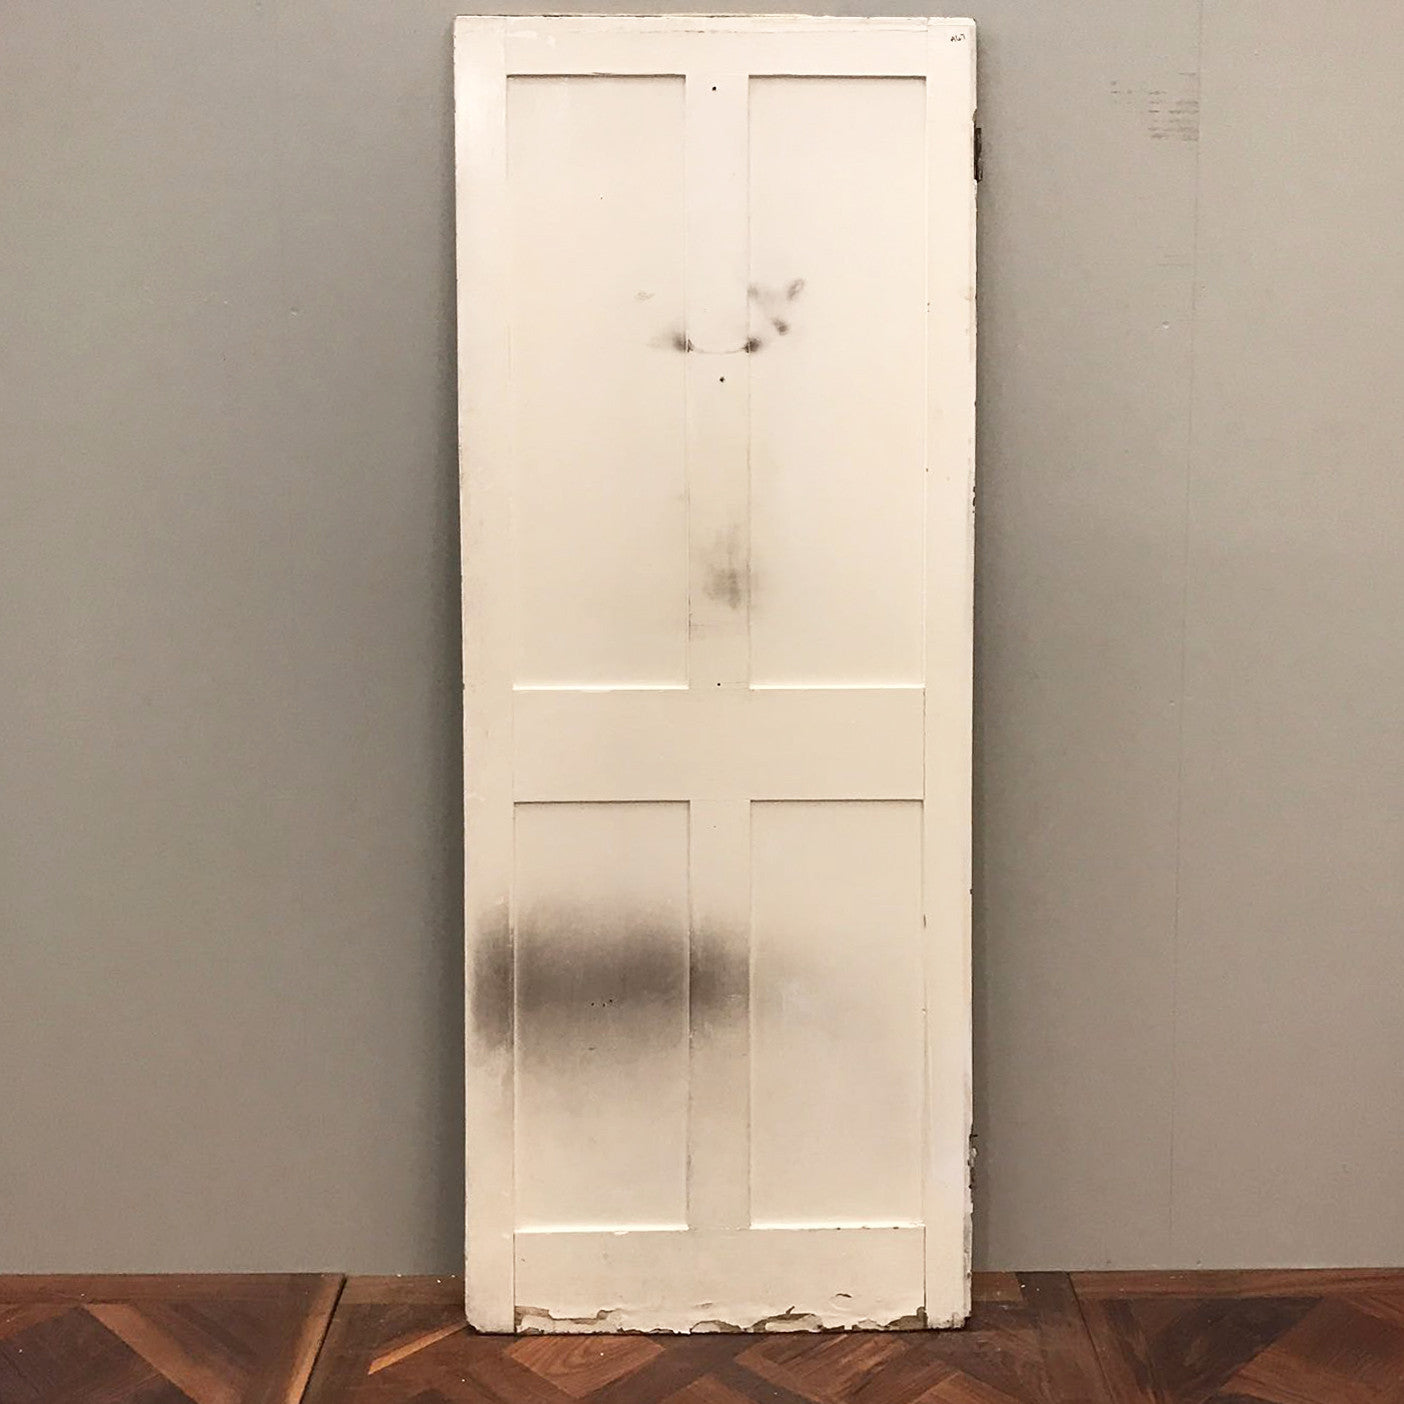 Reclaimed Victorian Four Panel Door - 192cm x 68.5cm x 3cm - architectural-forum